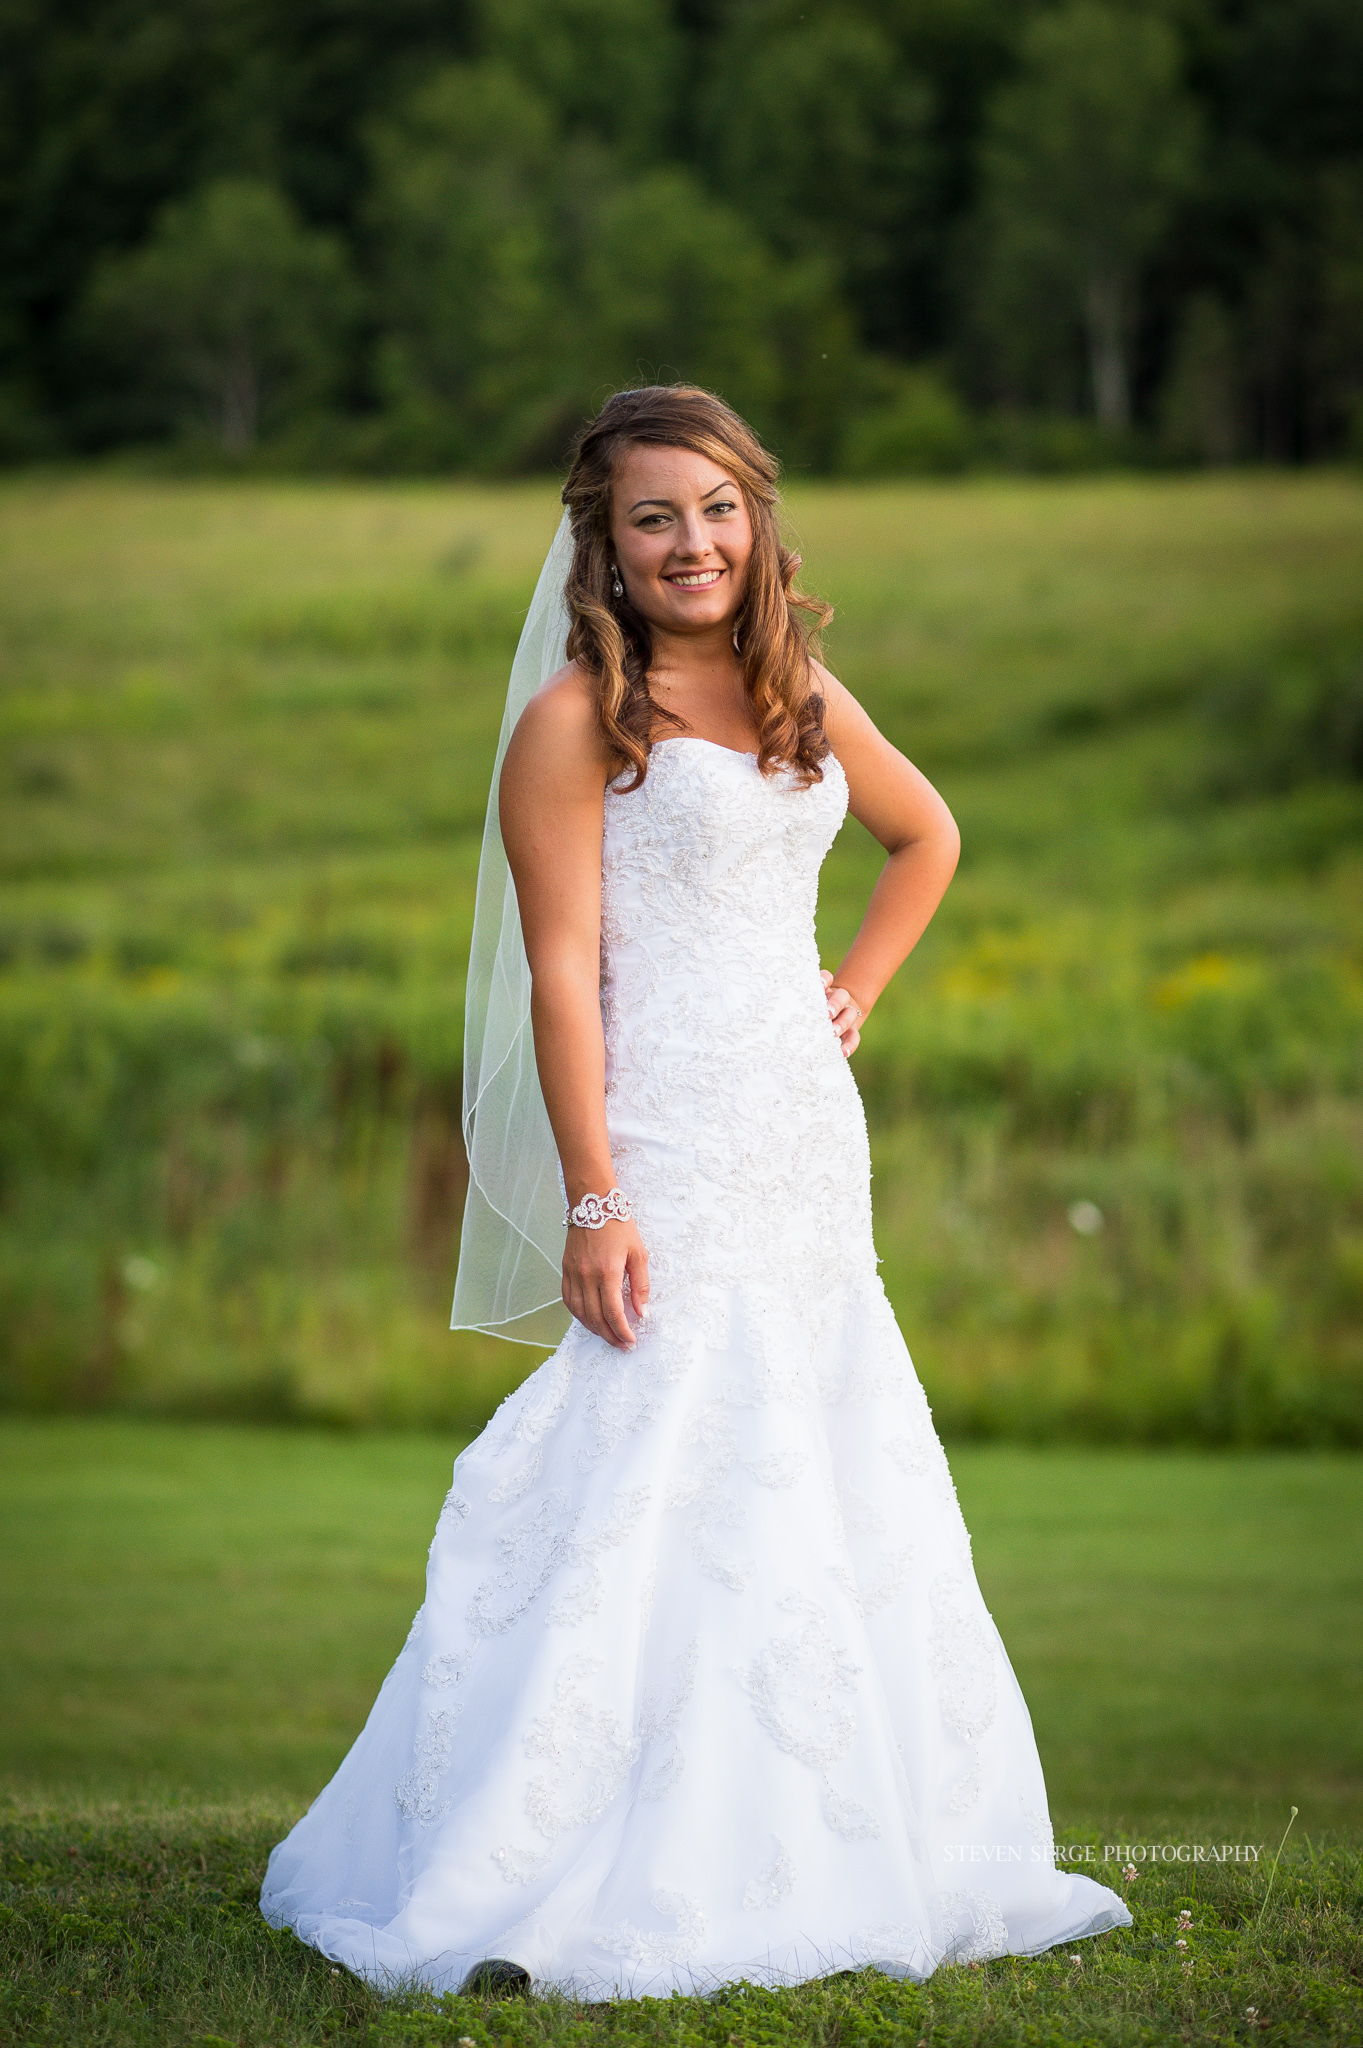 Clarks-Summit-PA-NEPA-Wedding-Photographer-Inn-Abingtons-Party-photography-steven-serge-68.jpg